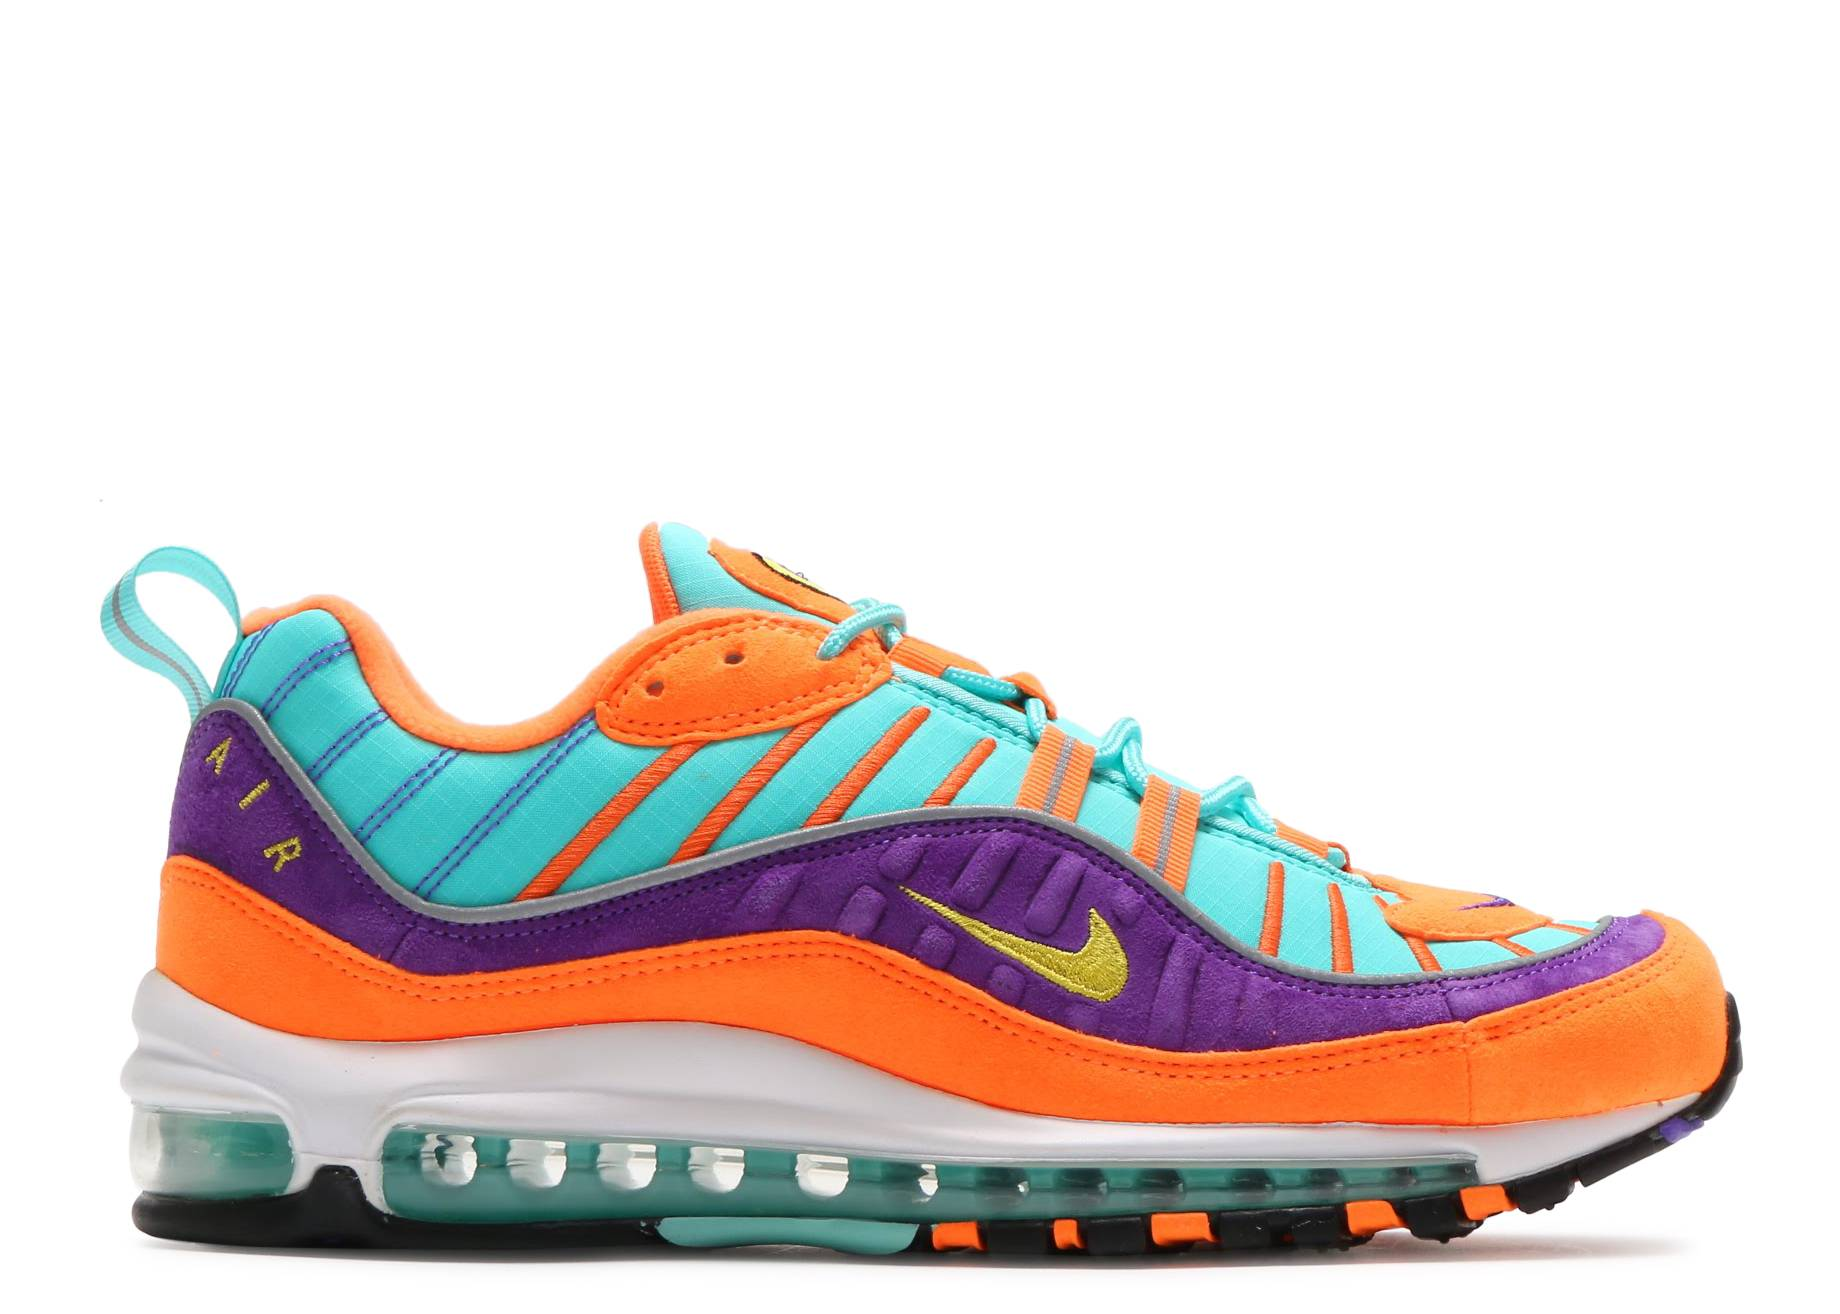 AIR MAX 98 QS - Nike - 924462 800 - cone tour yellow-hyper grape ... 05e5c5ea89